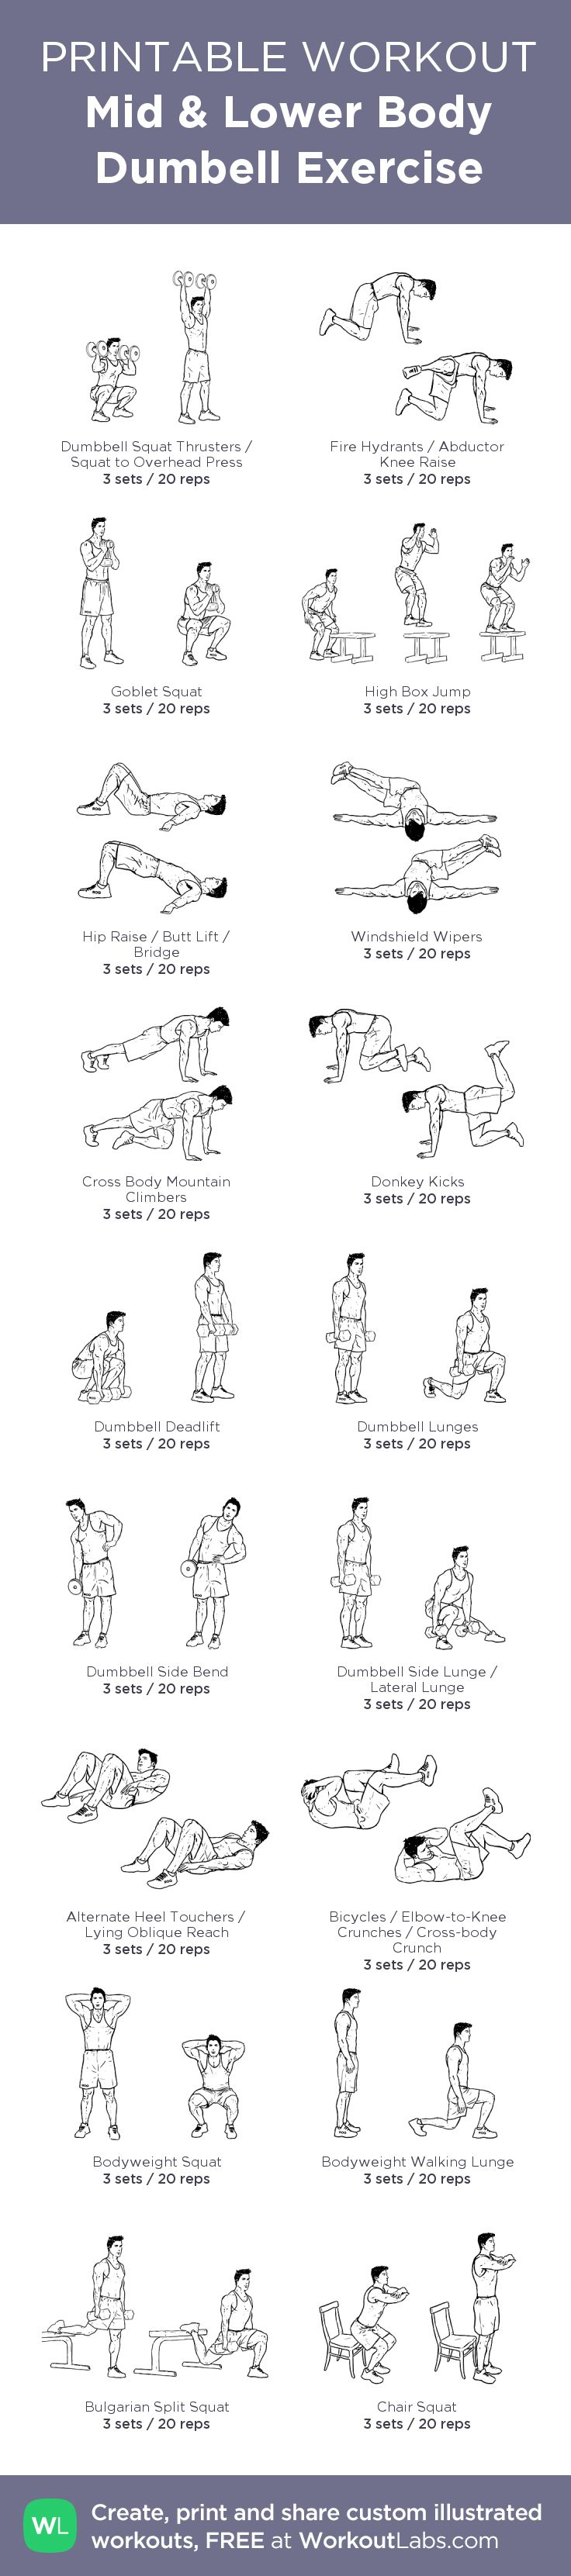 Mid & Lower Body Dumbell Exercise: Created at WorkoutLabs.com • Click through to customize and download as a FREE PDF! #customworkout